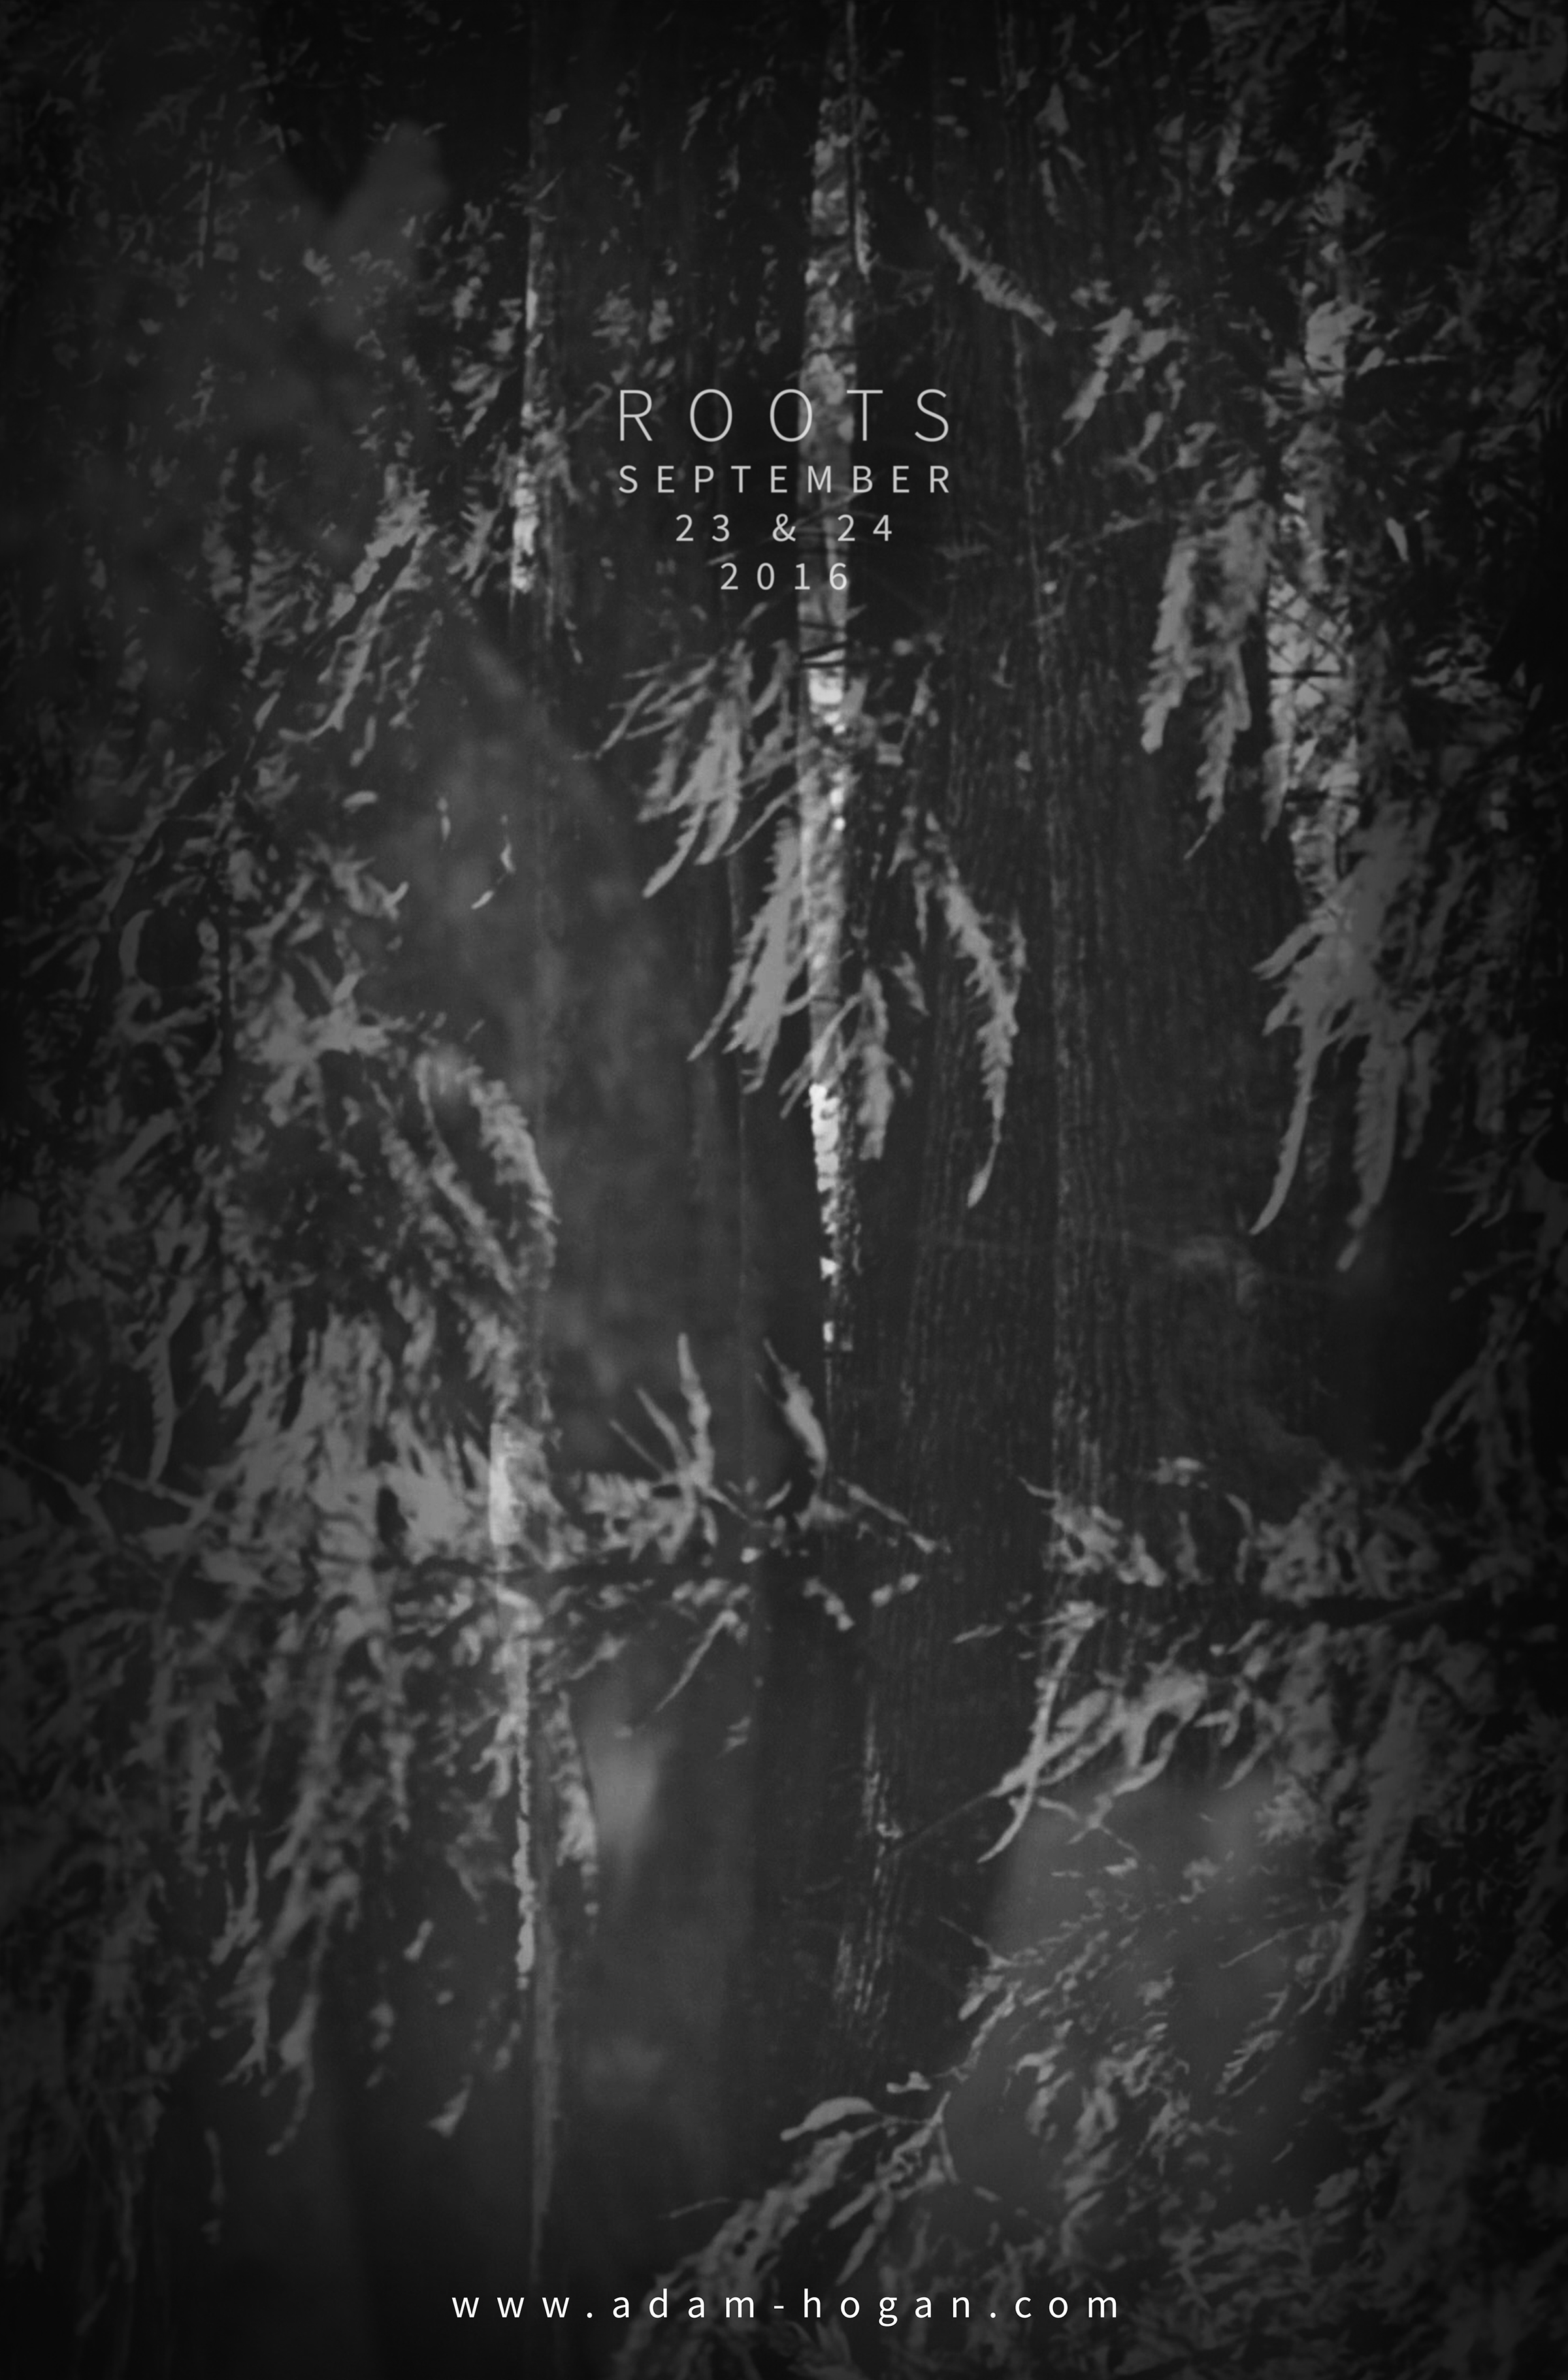 Roots_(poster)_web.jpg